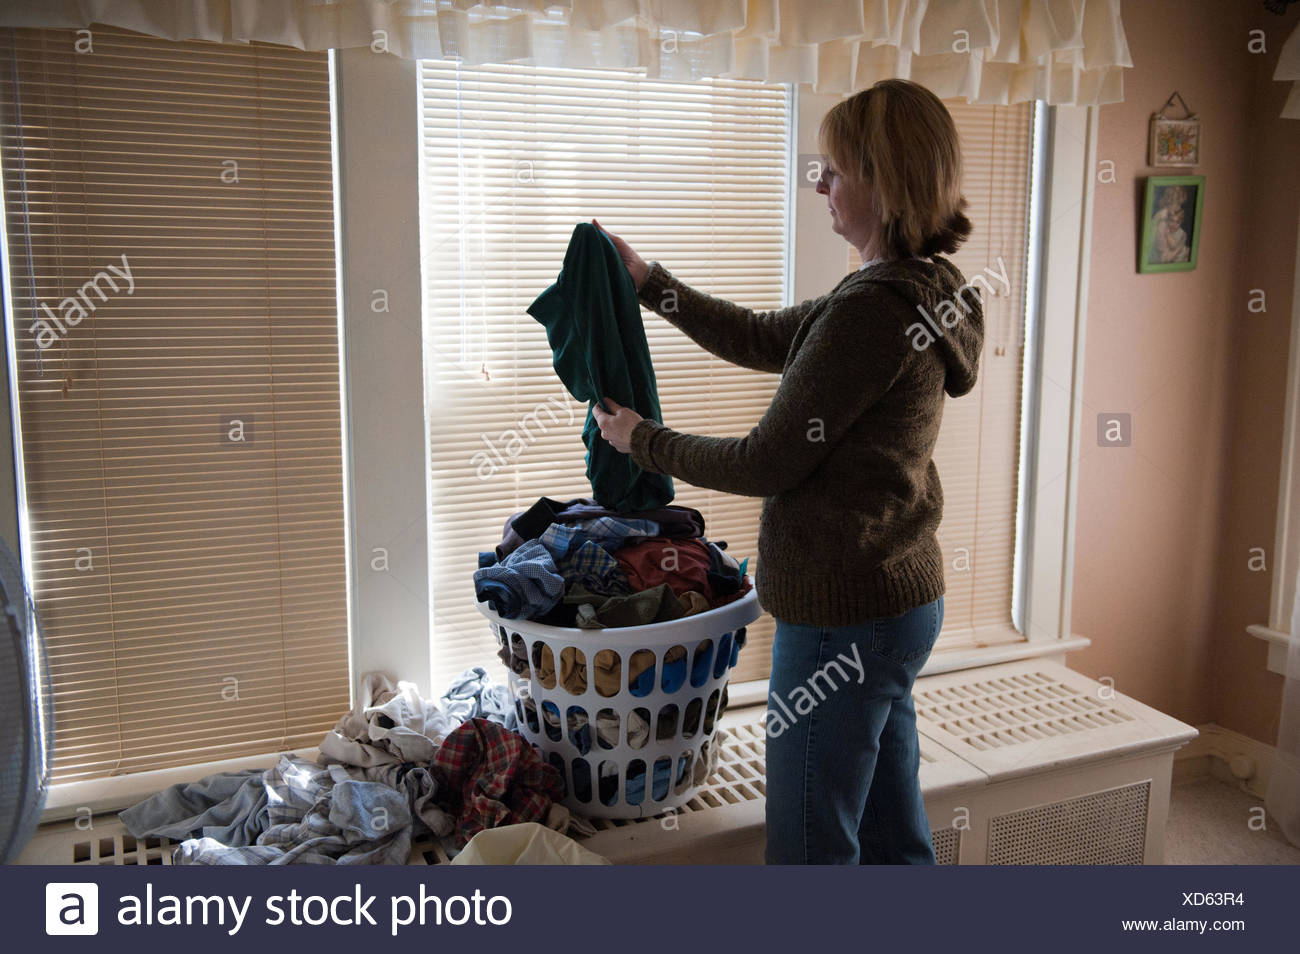 A woman folds laundry at her home in Lincoln, Nebraska. - Stock Image